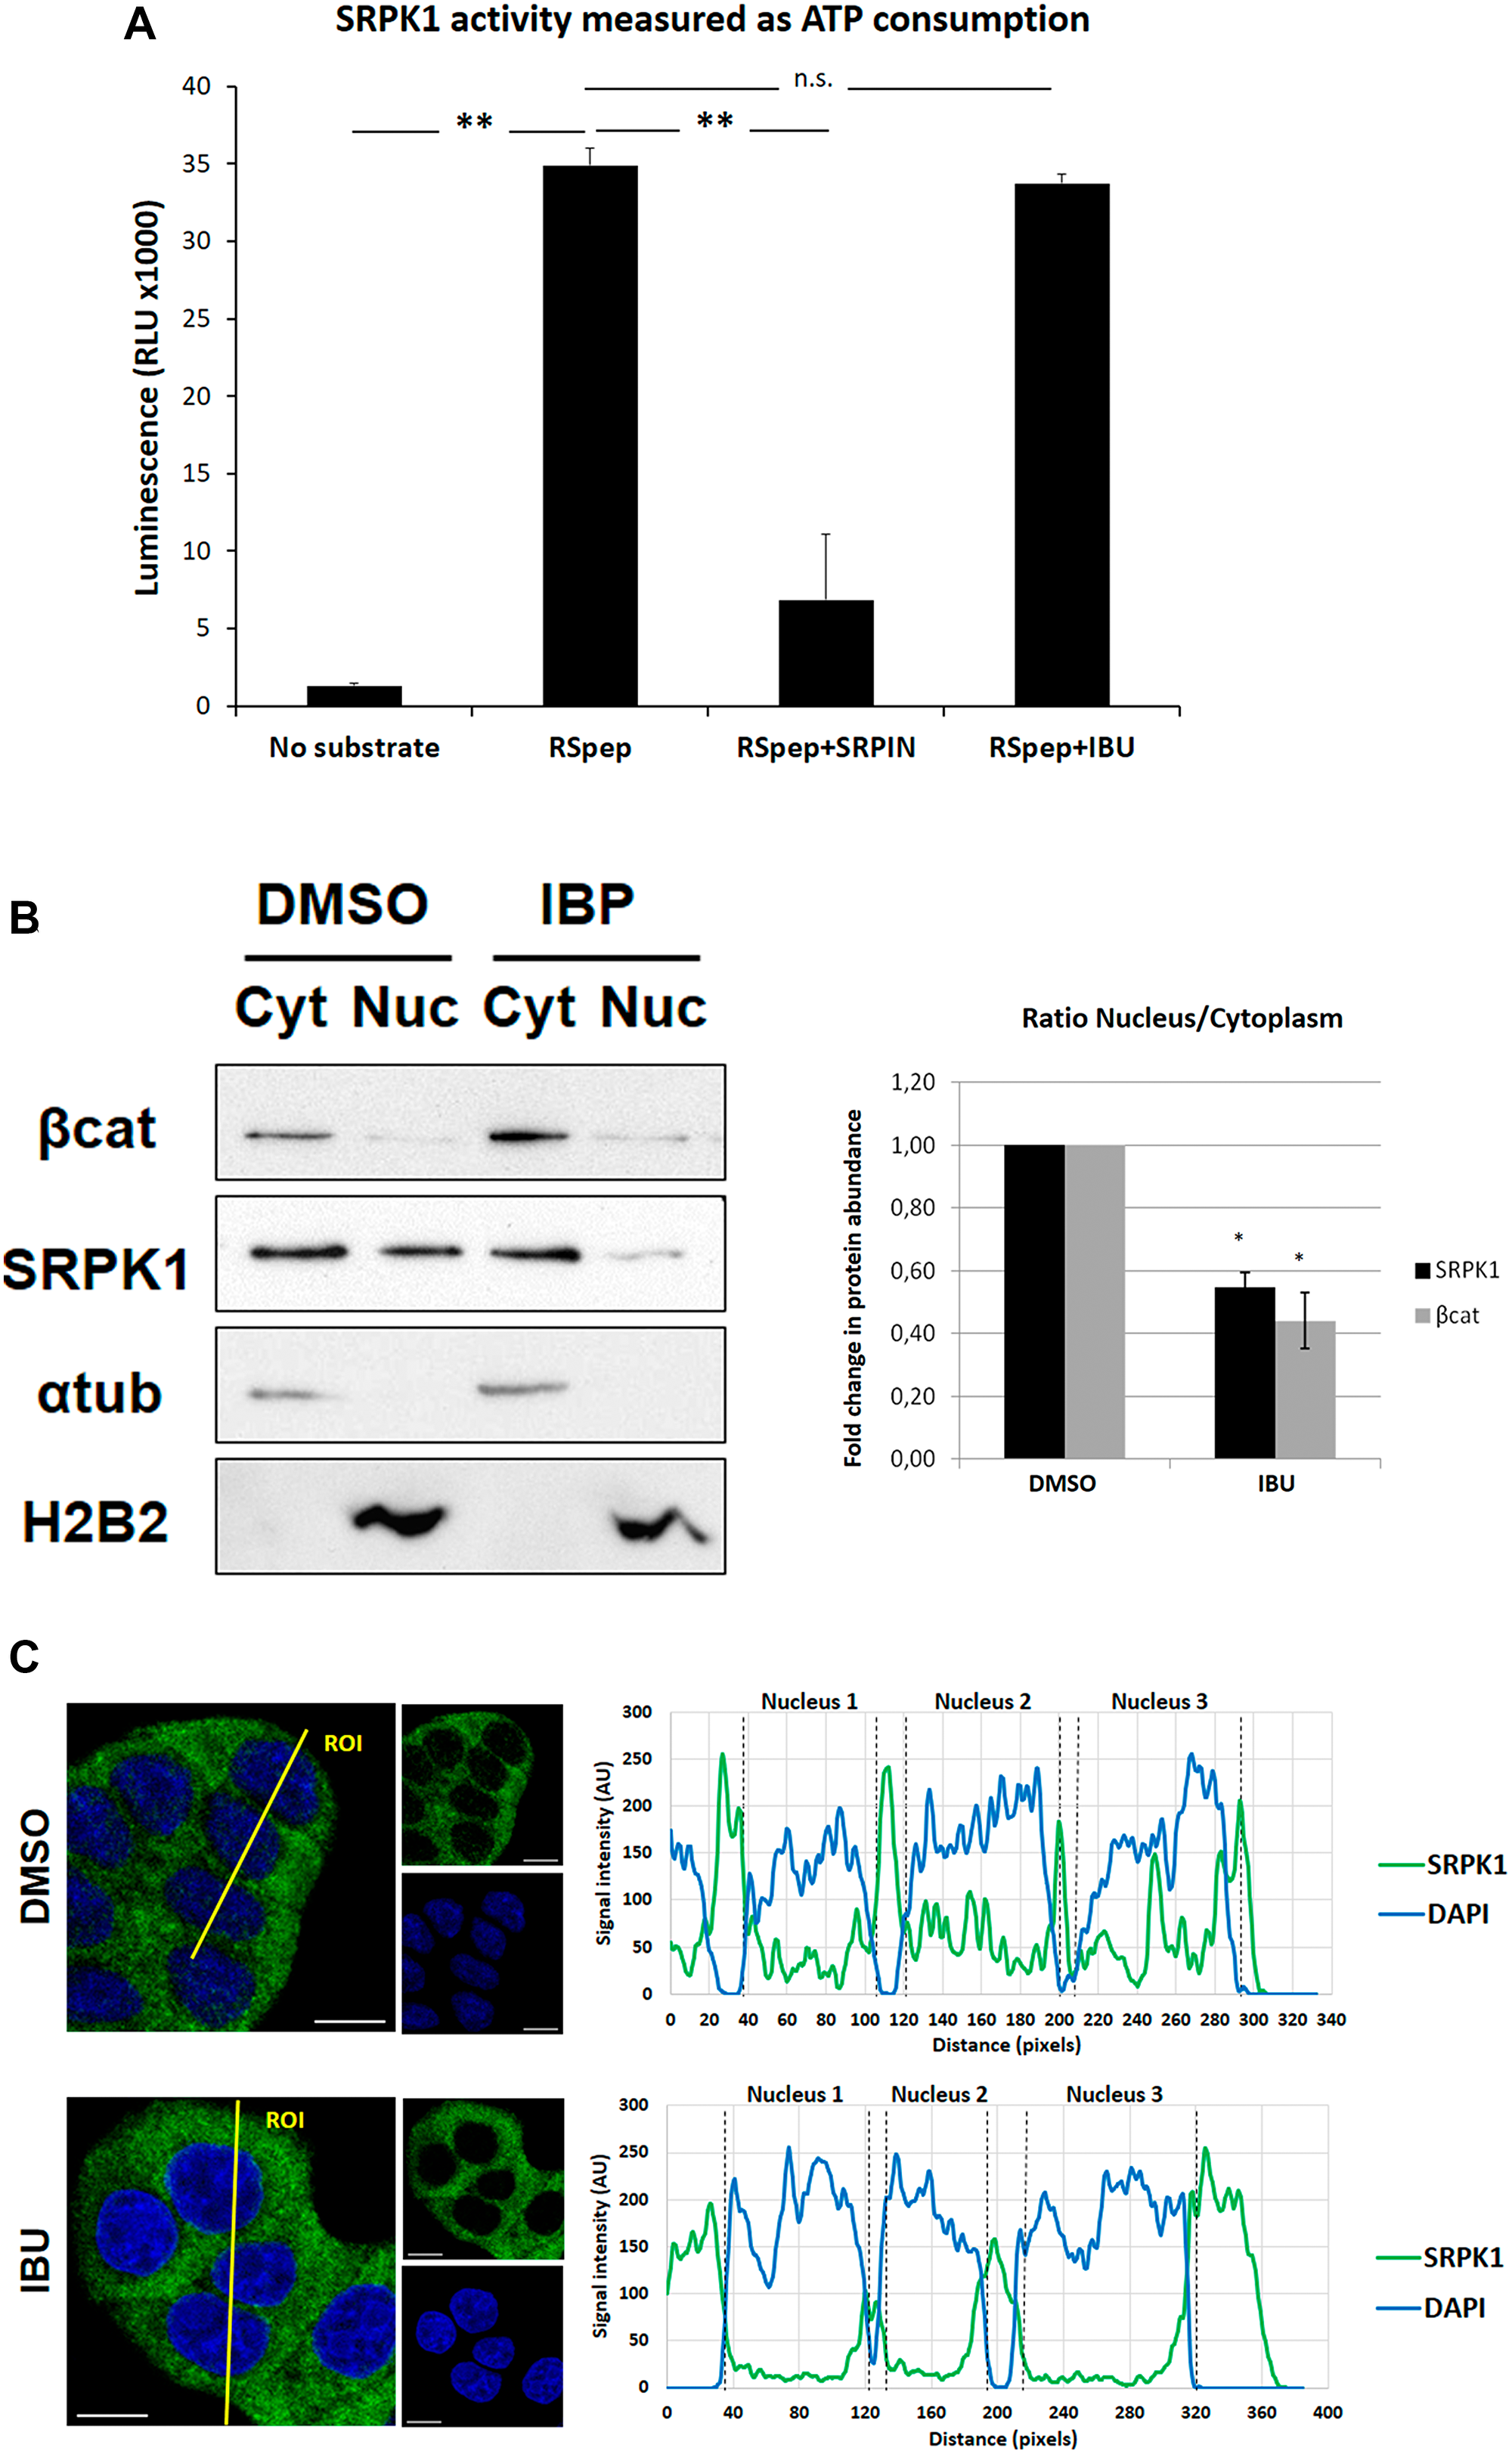 Effect of ibuprofen treatment on SRPK1 catalytic activity and subcellular localization.